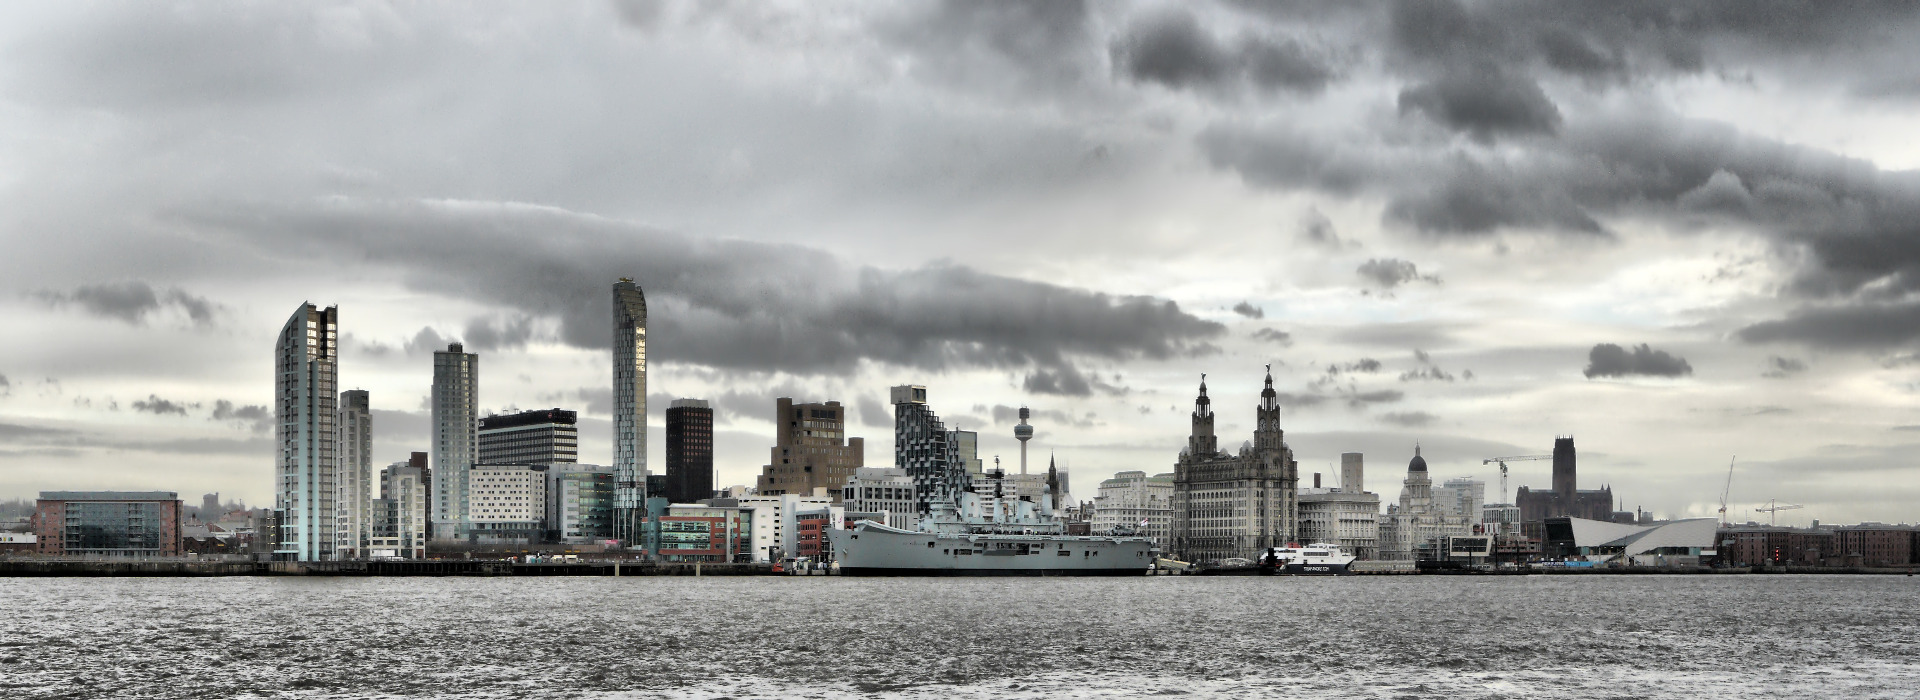 Liverpool_Skyline_with_HMS_Ark_Royal1920